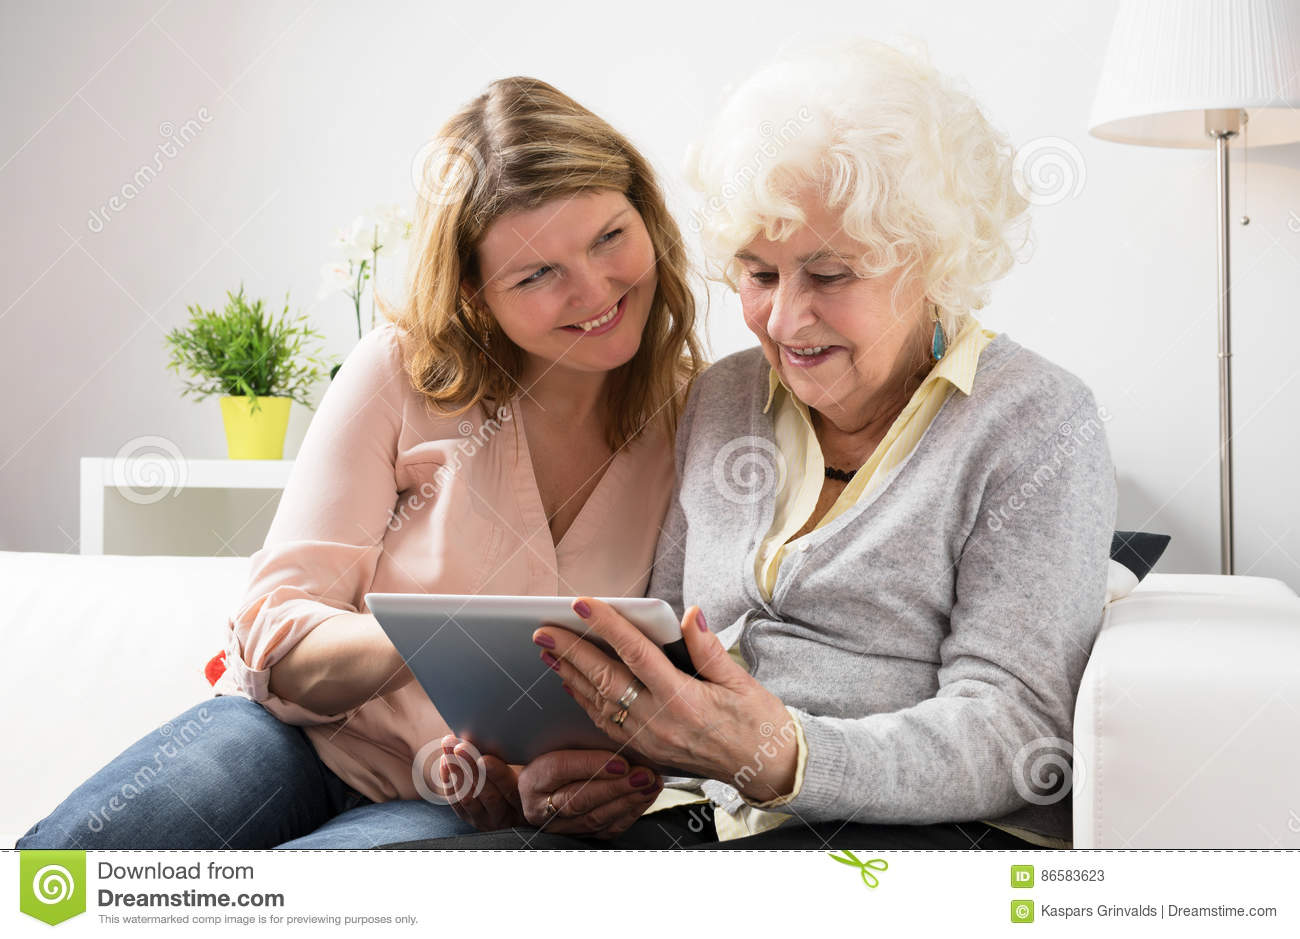 Granddaughter teaching grandmother how to use tablet